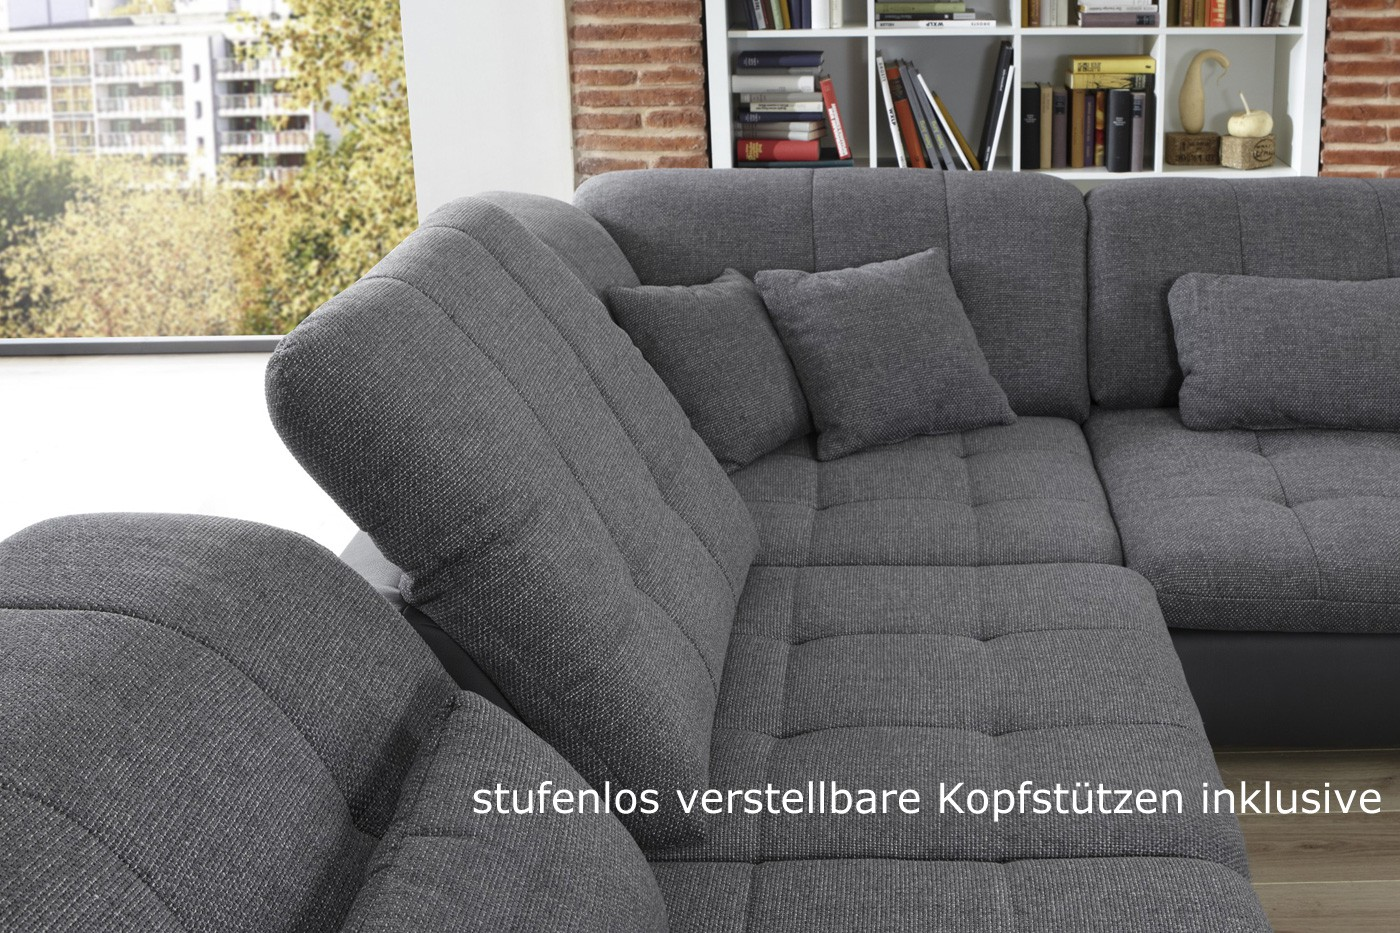 Ordinaire Couch Und Co